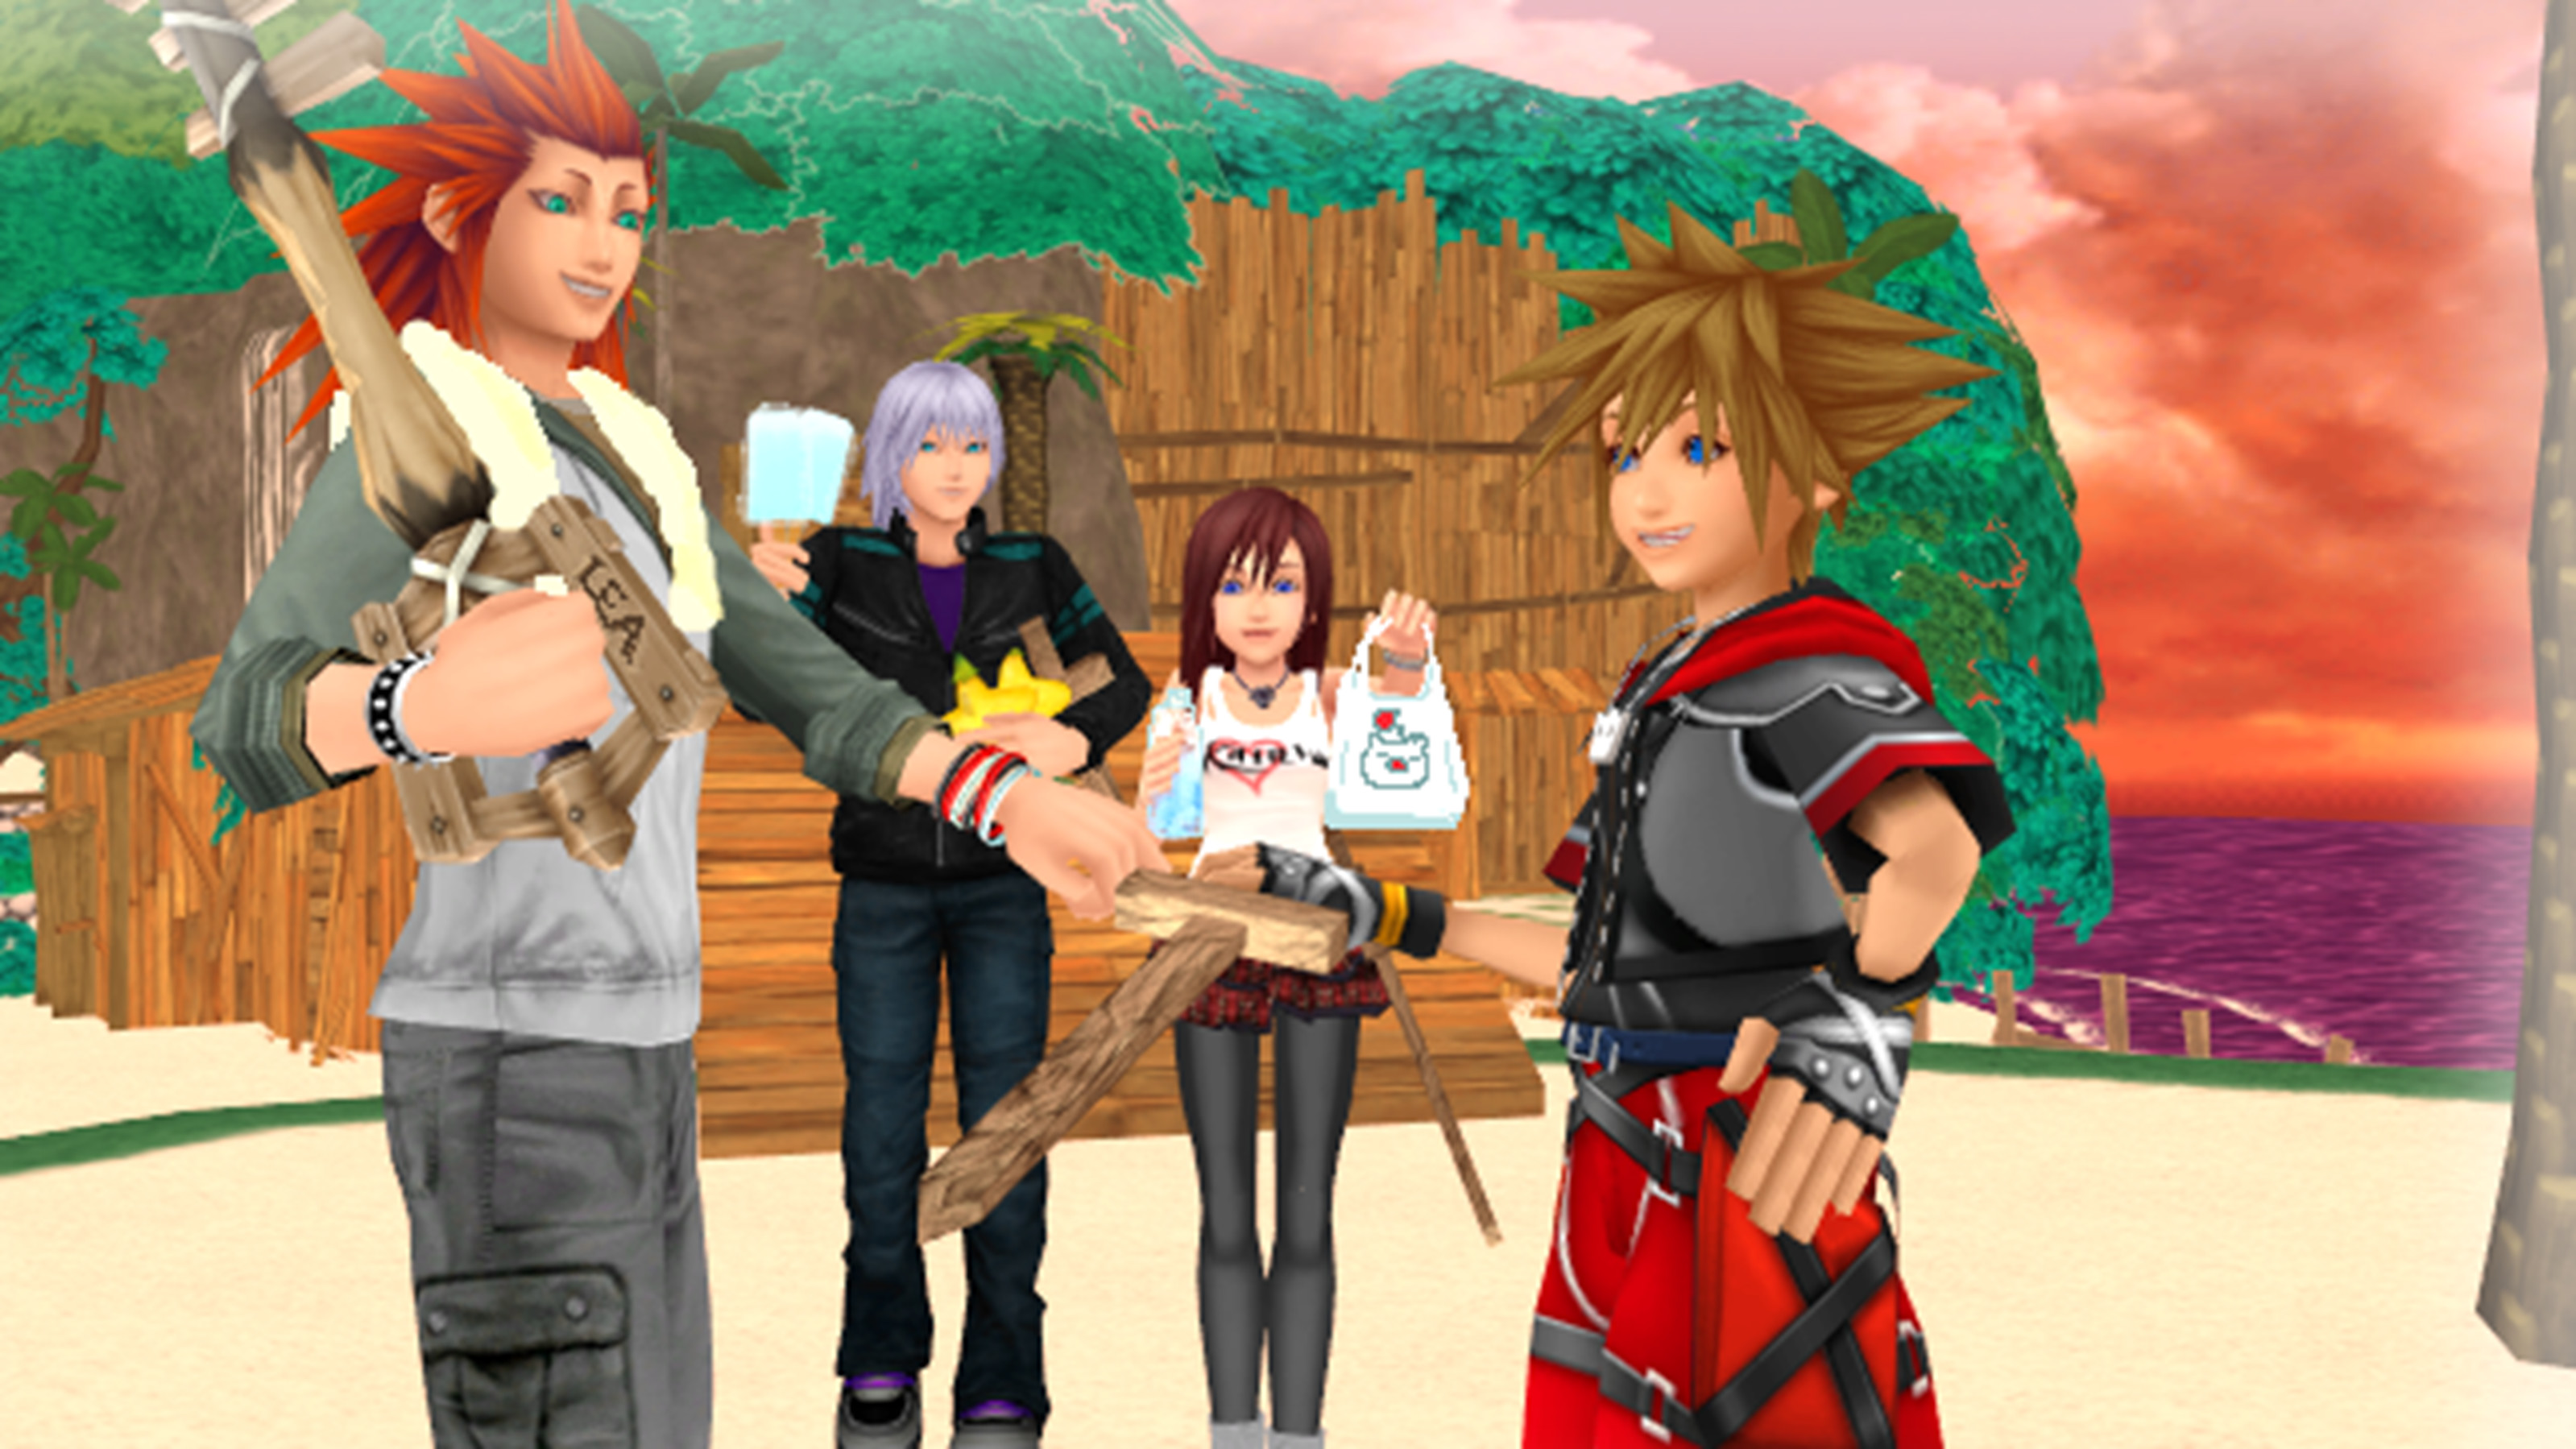 Kingdom Hearts trios images Sora and Lea Practing Keyblade Training with  Riku and Kairi. HD wallpaper and background photos